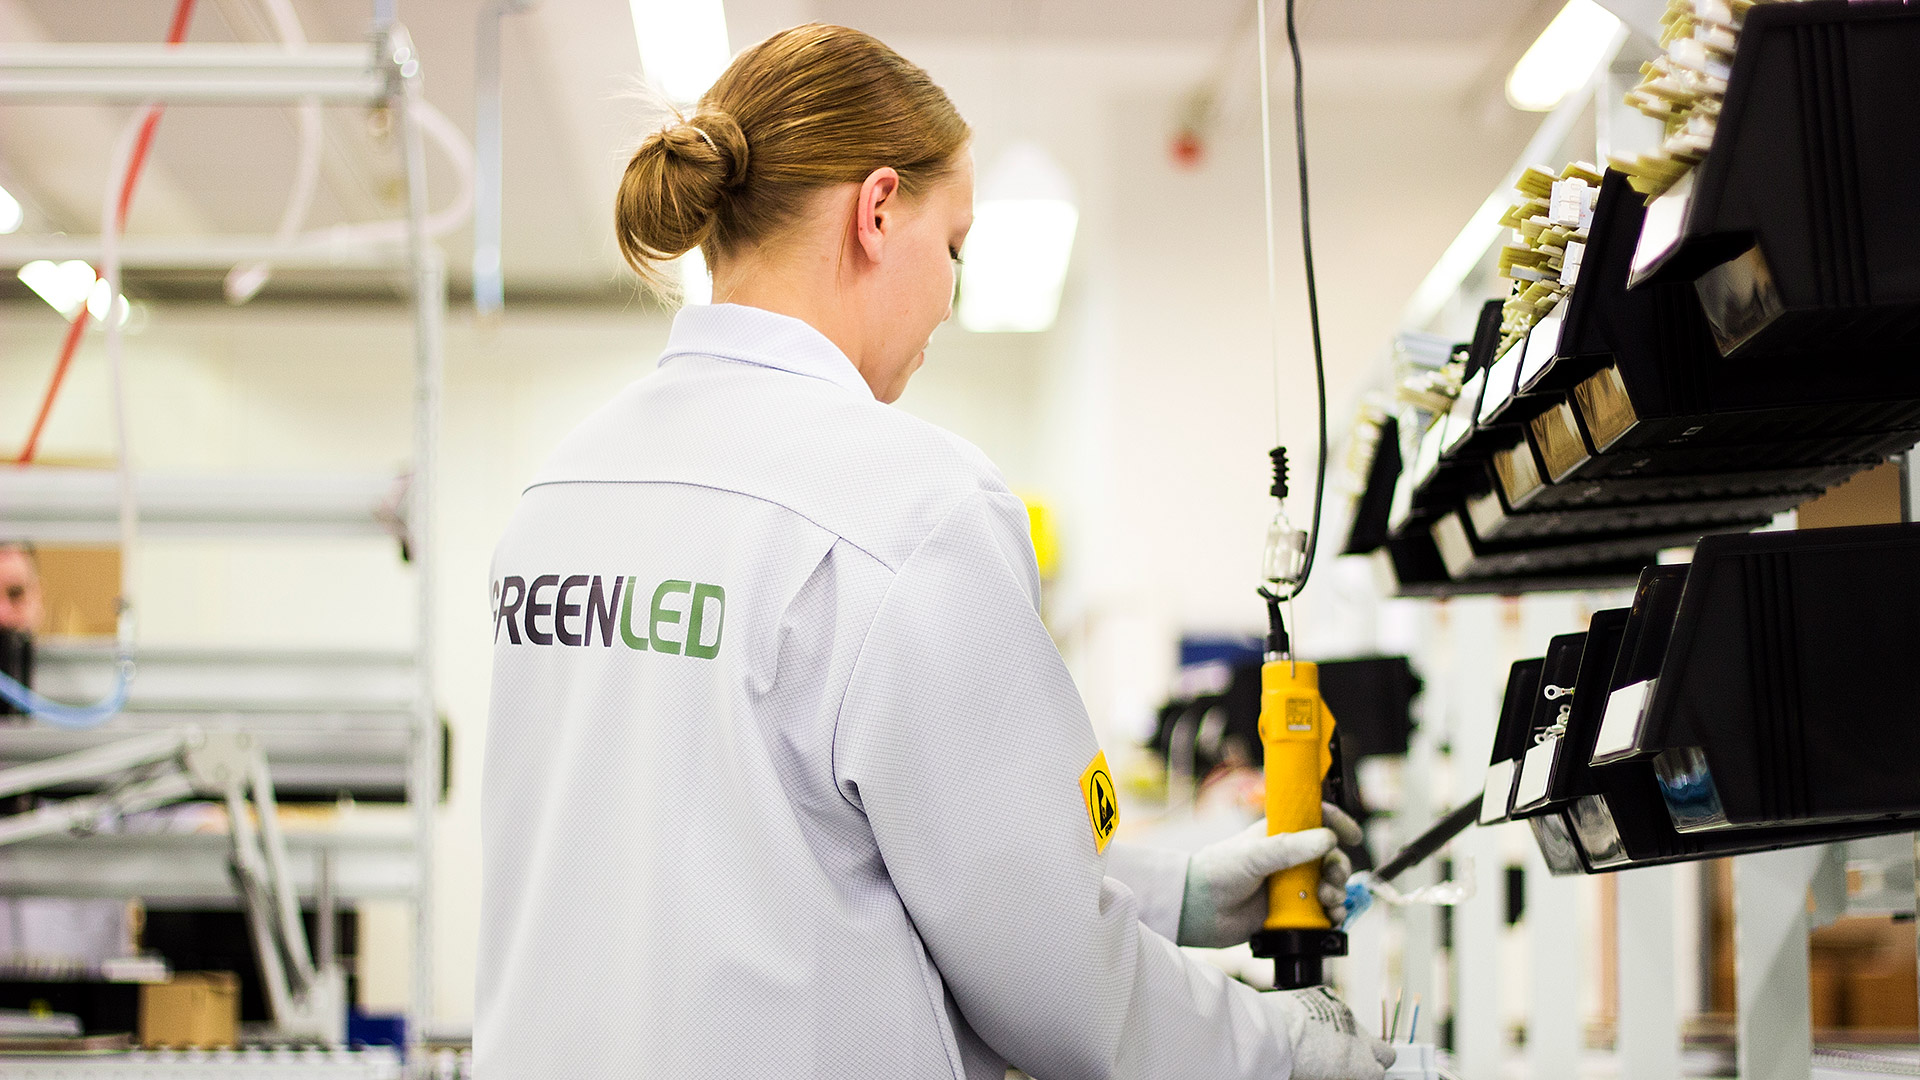 Greenled street luminaires are manufactured at the company's own factory in Kempele